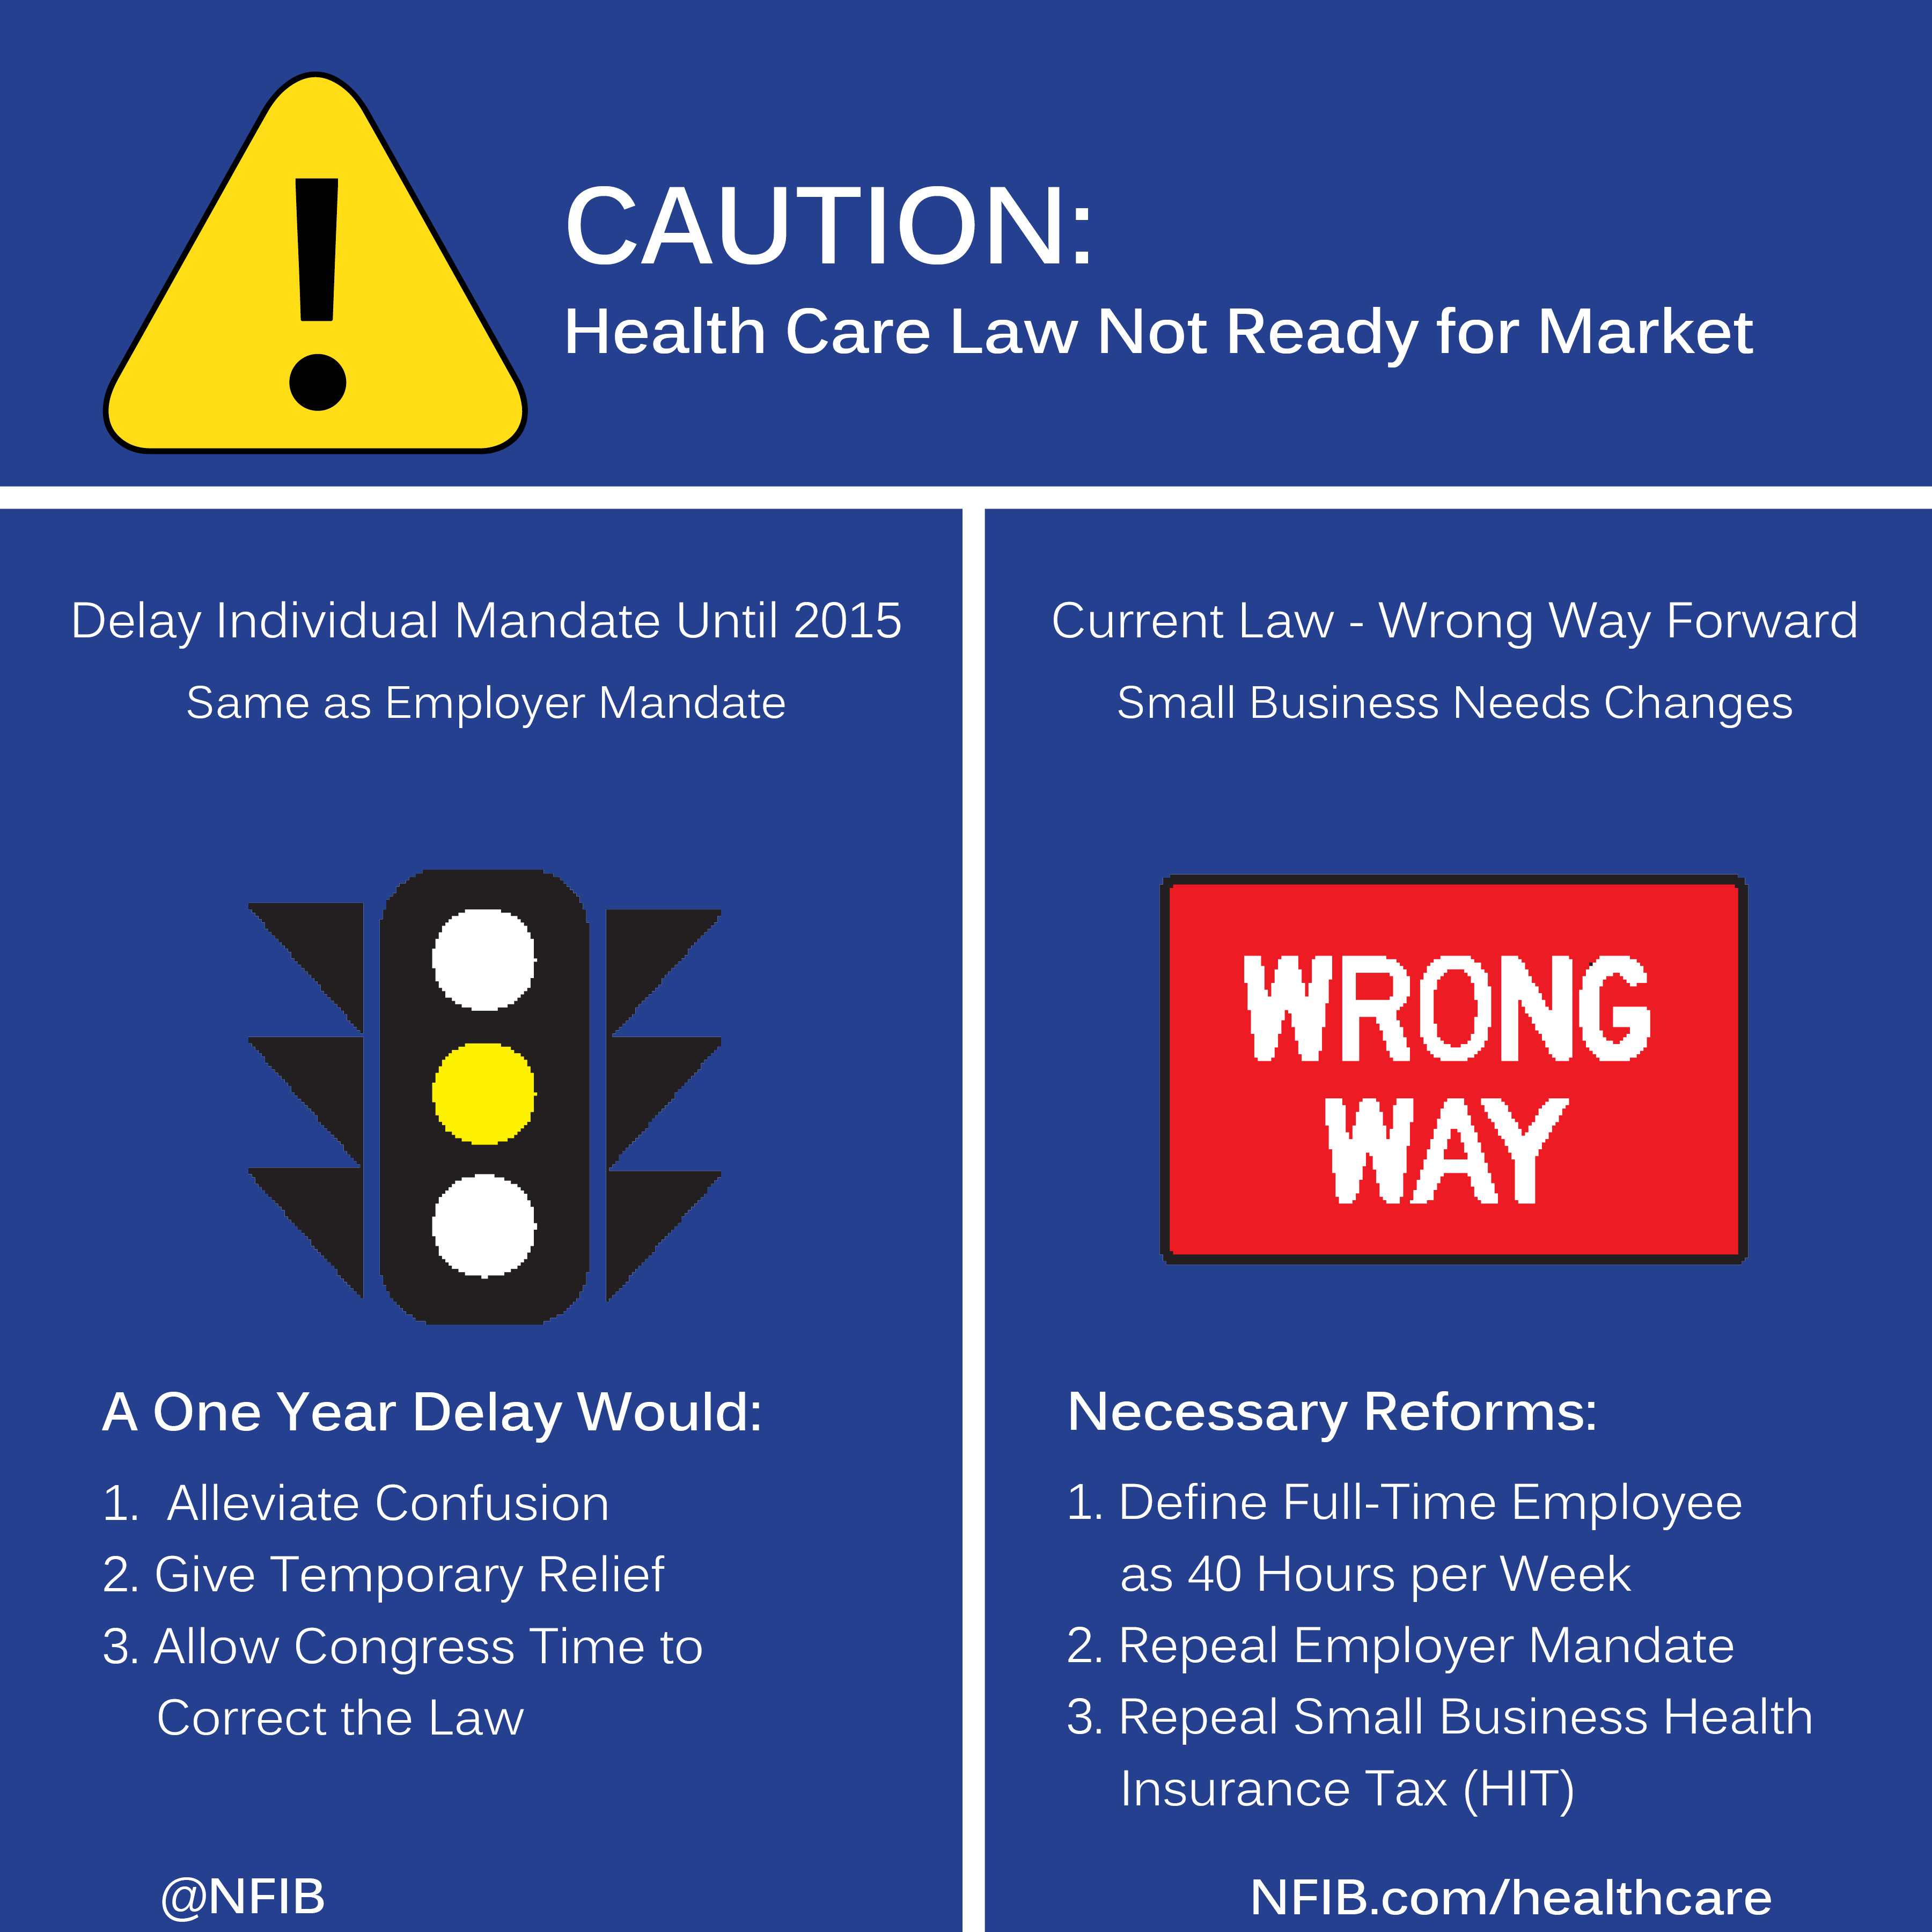 Healthcare Graphic July 2013.jpg